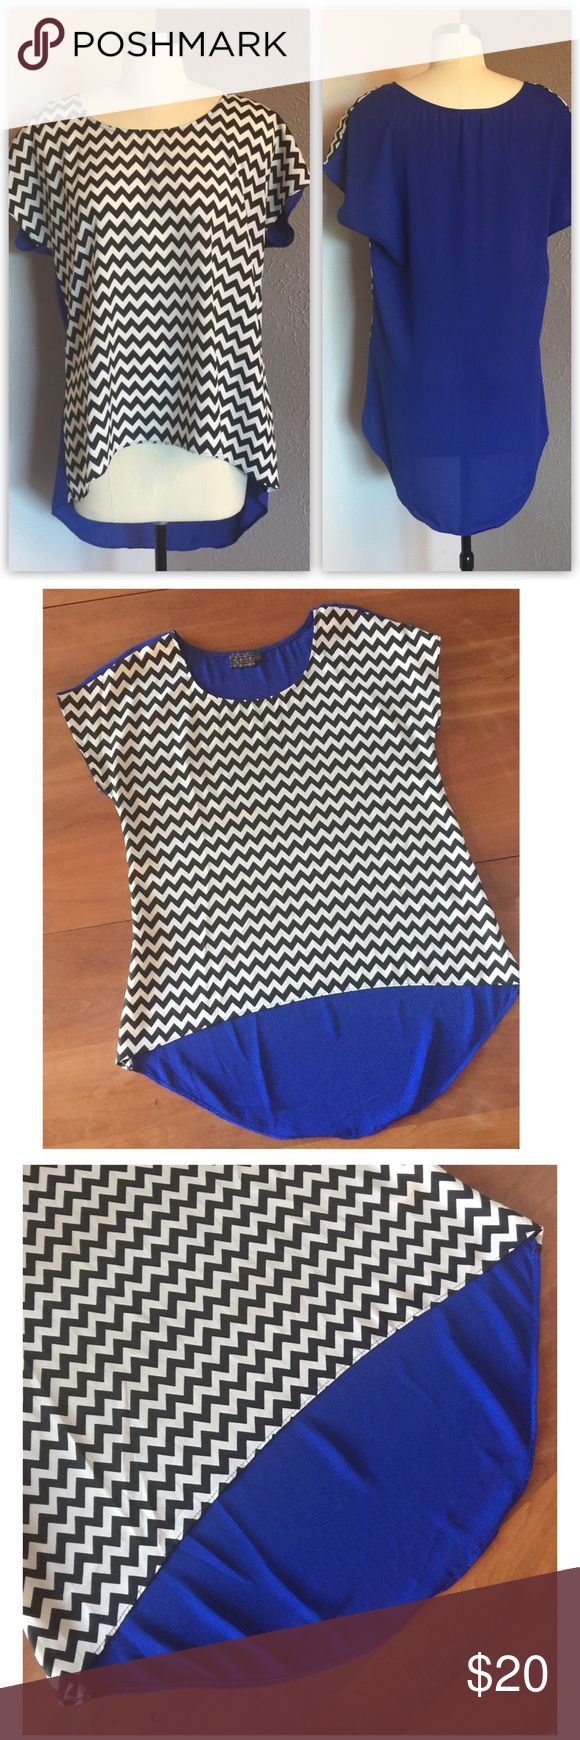 """MMMM Couture Chevron High-Low Top Chevron Top by MMMM Couture Short cap sleeves . Light weight. Chevron front black/white -  solid blue back  Size: Large. Worn a few times but in great condition. Length: High/ low 24"""" - 31"""" //  Bust: 21"""" MM Couture Swim"""